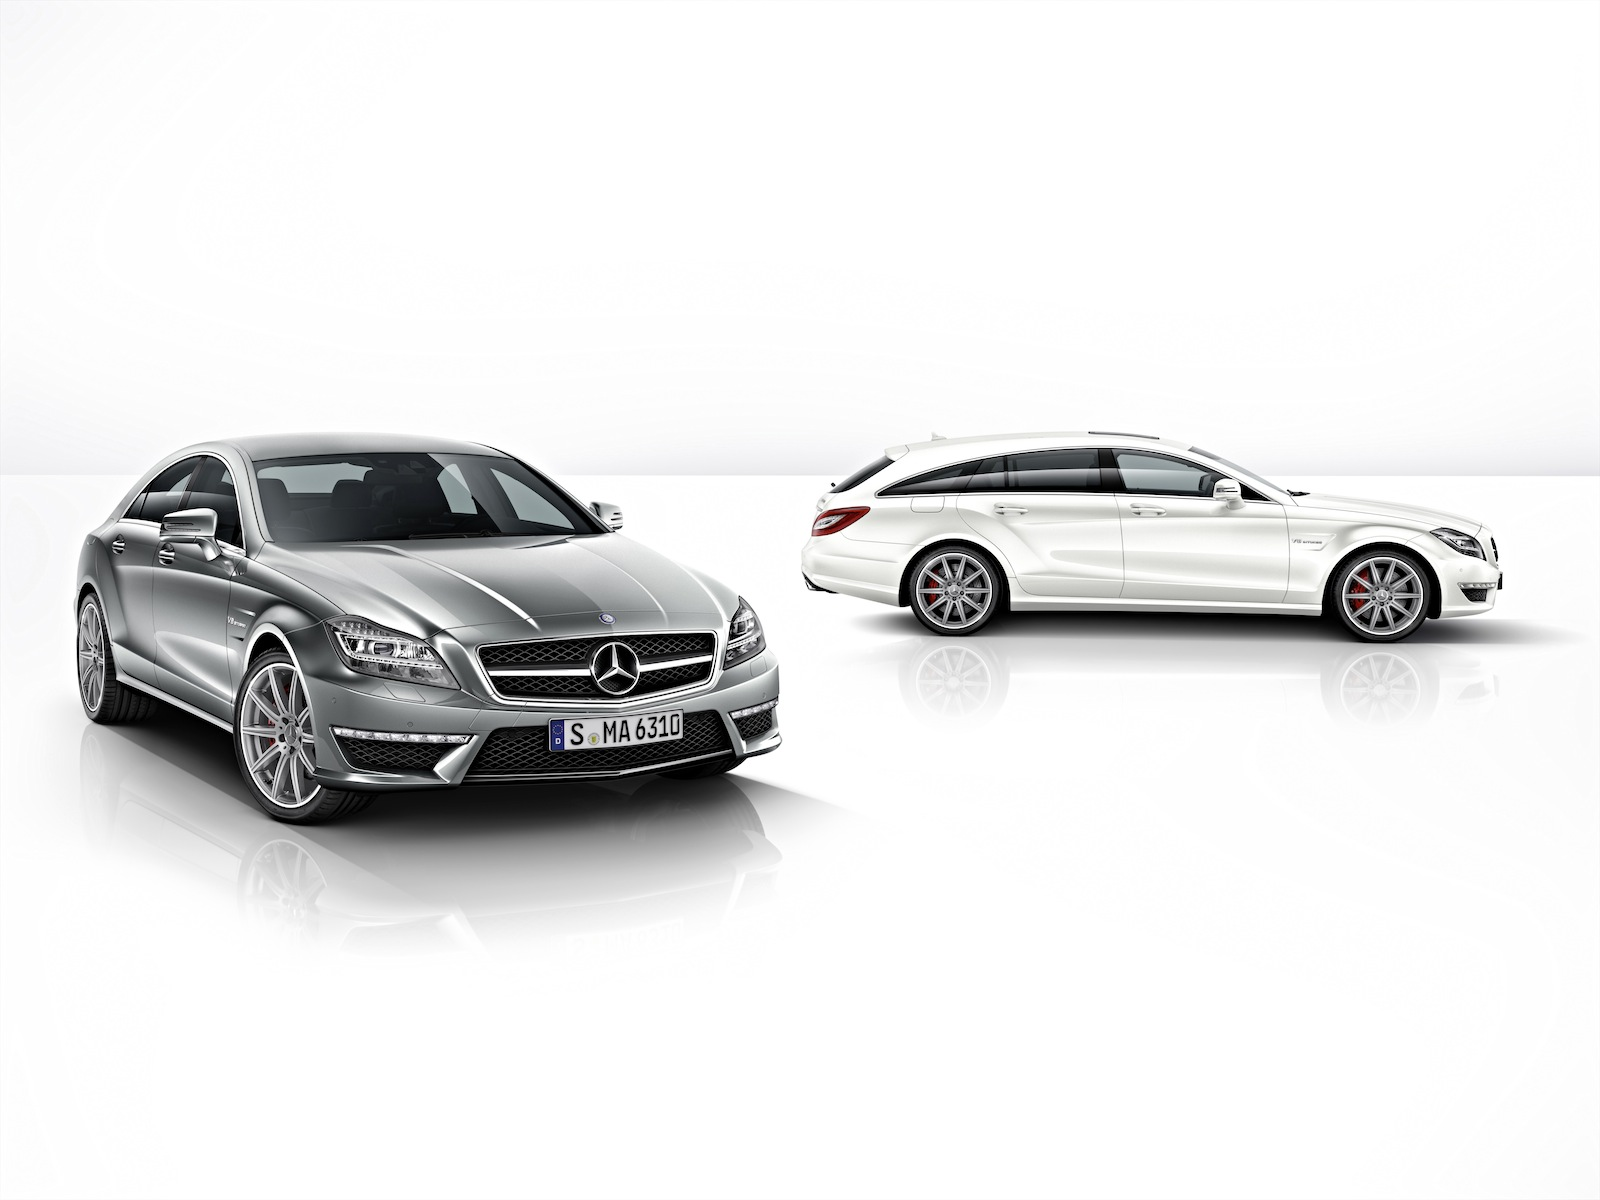 2014 mercedes cls63 amg to get higher performance s model